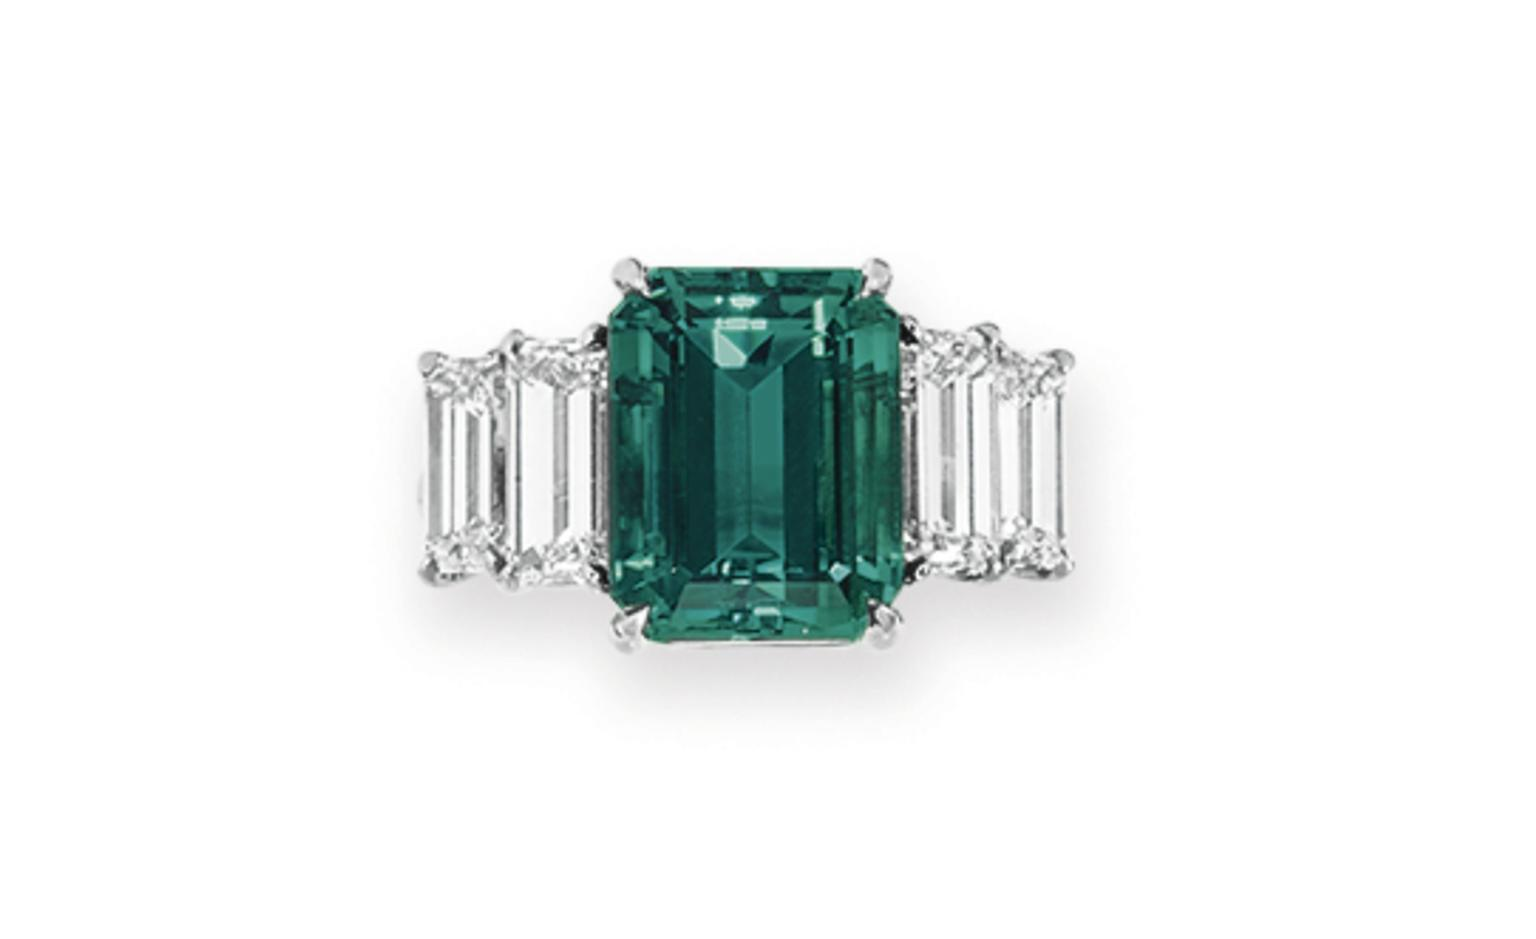 Lot 95. A green tourmaline and diamond ring. Estimate 2,000 - 3,000 U.S. dollars. SOLD FOR $6,250